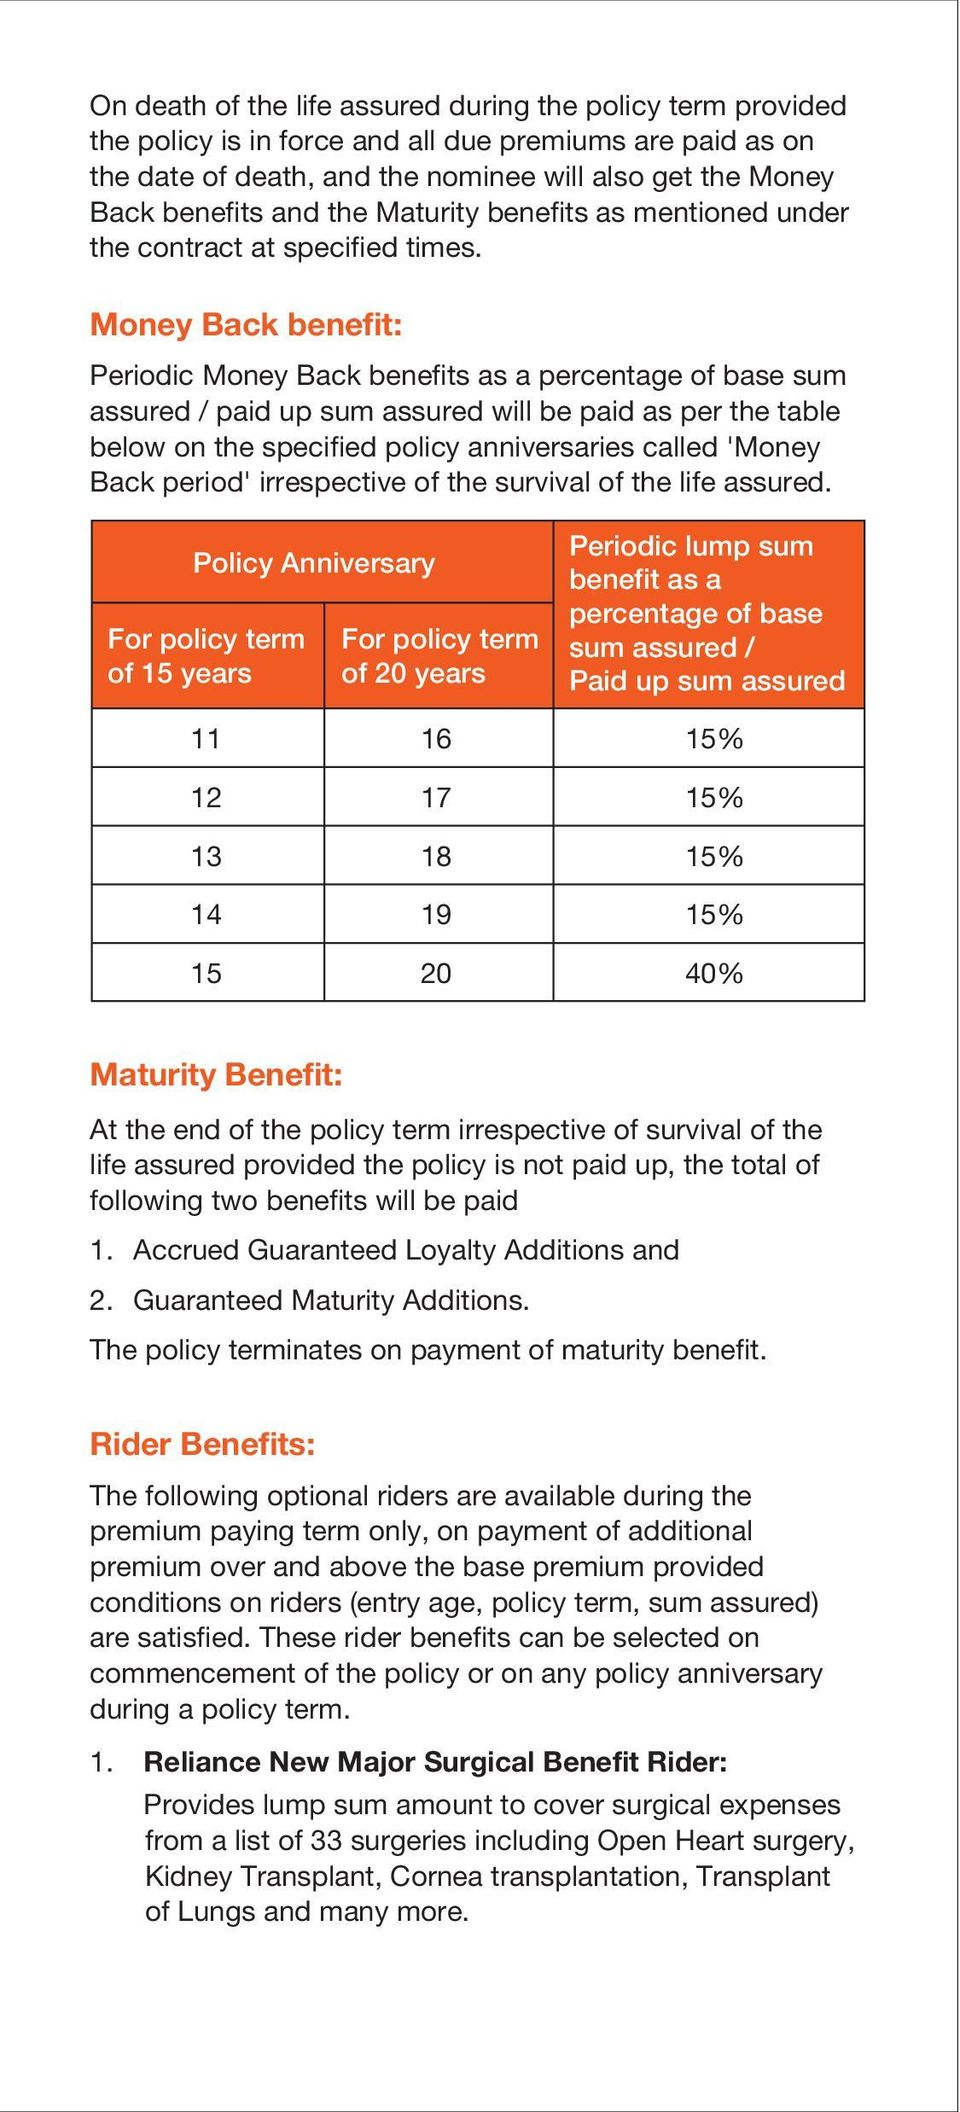 Money Back benefit: Periodic Money Back benefits as a percentage of base sum assured / paid up sum assured will be paid as per the table below on the specified policy anniversaries called 'Money Back